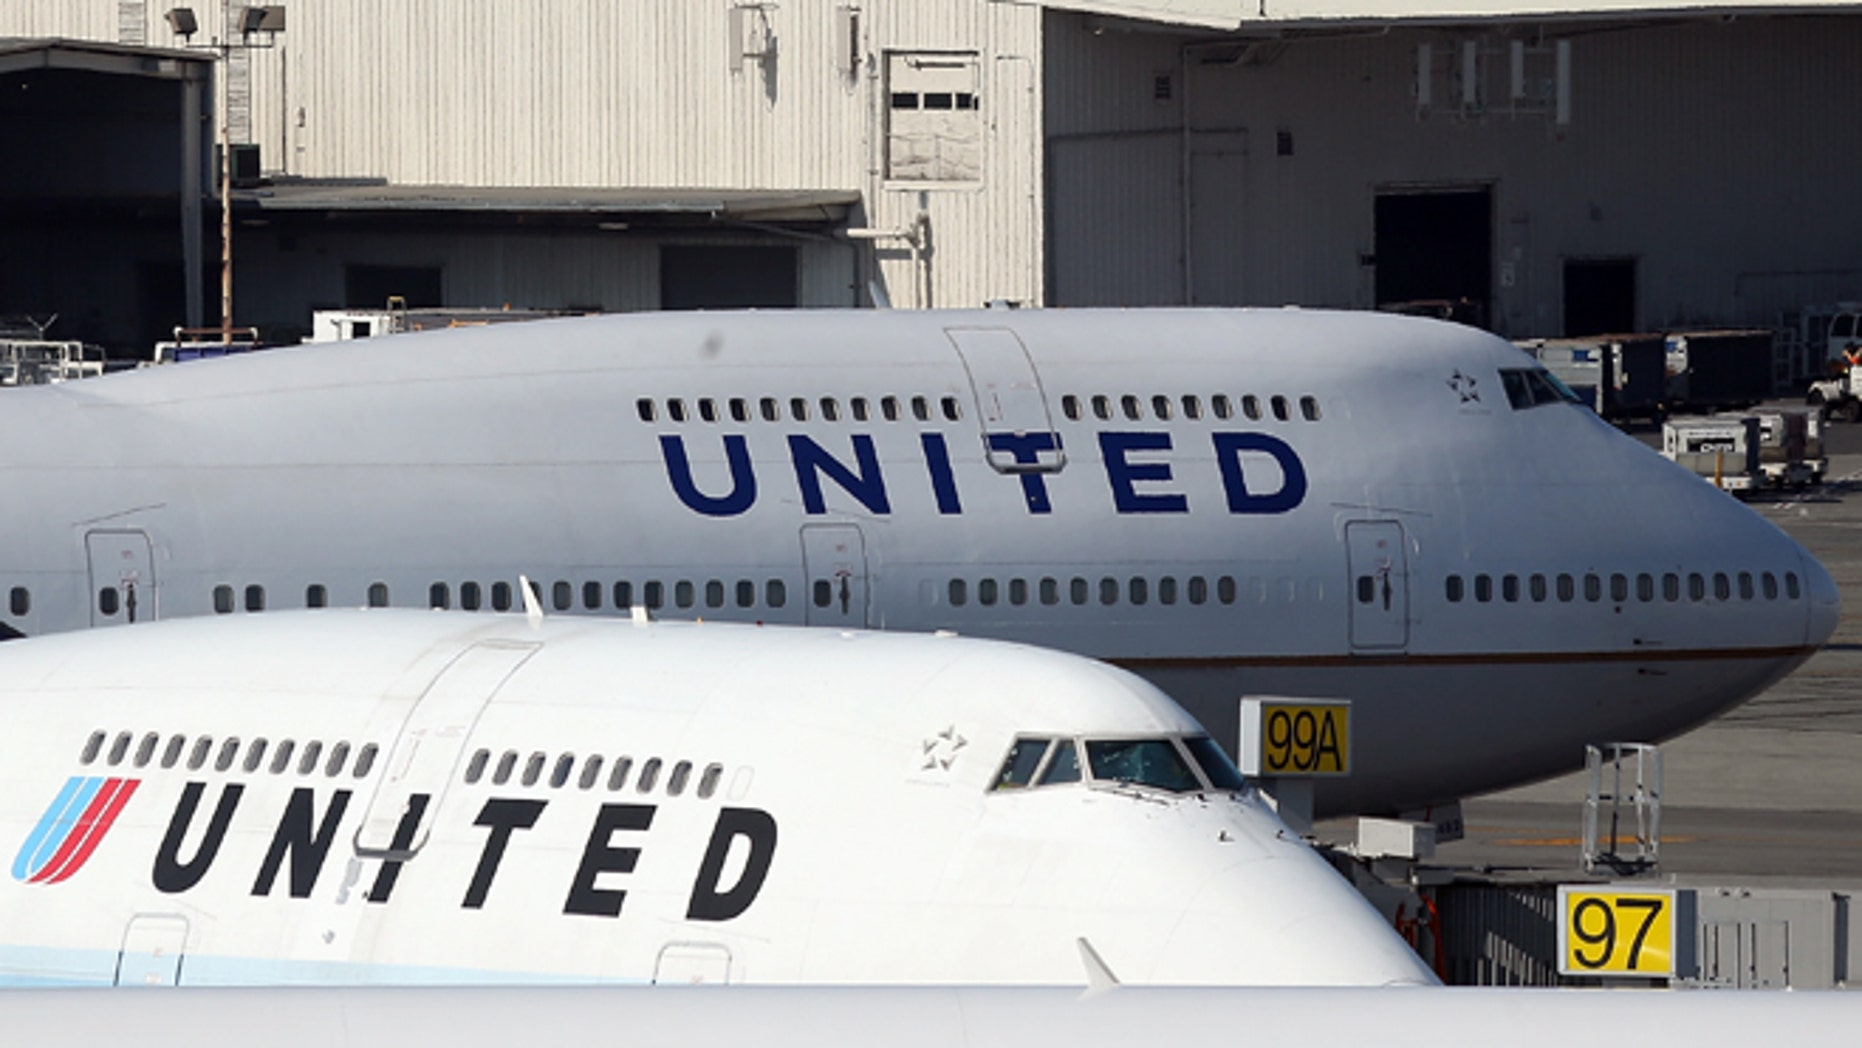 SAN FRANCISCO, CA - JANUARY 23:   United Airlines planes sit on the tarmac at San Francisco International Airport on January 23, 2014 in San Francisco, California. United Airlines parent company United Continental Holdings reported a surge in fourth quarter profits with earnings of $140 million compared to a loss of $620 million one year ago.  (Photo by Justin Sullivan/Getty Images)